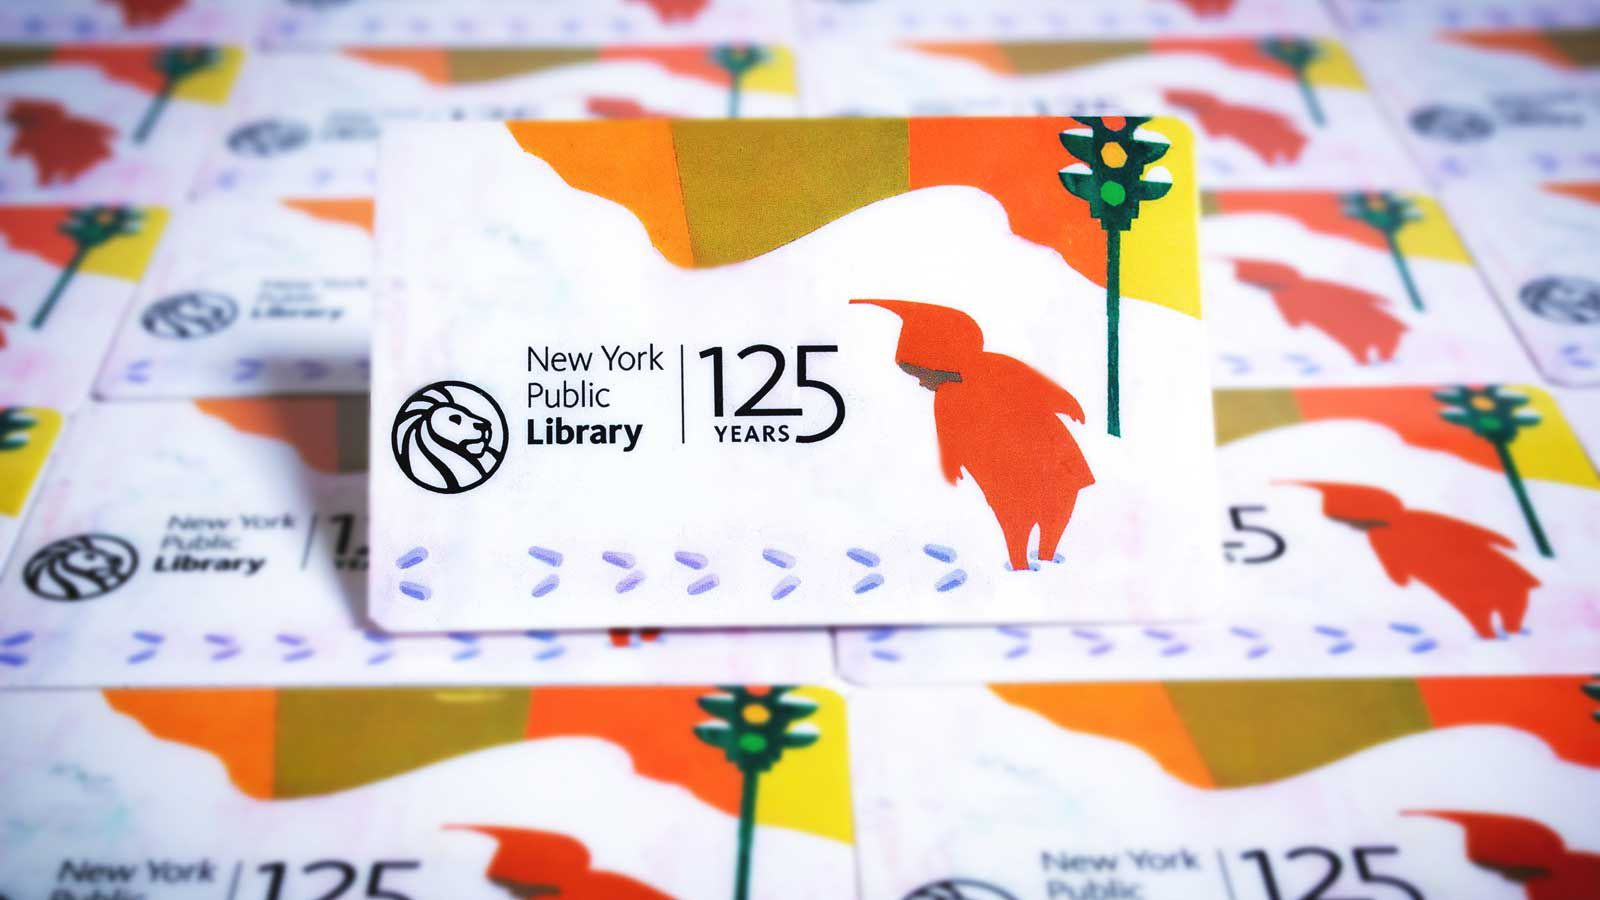 Snowy Day book cover on New York Public Library card for limited 125 Year Anniversary